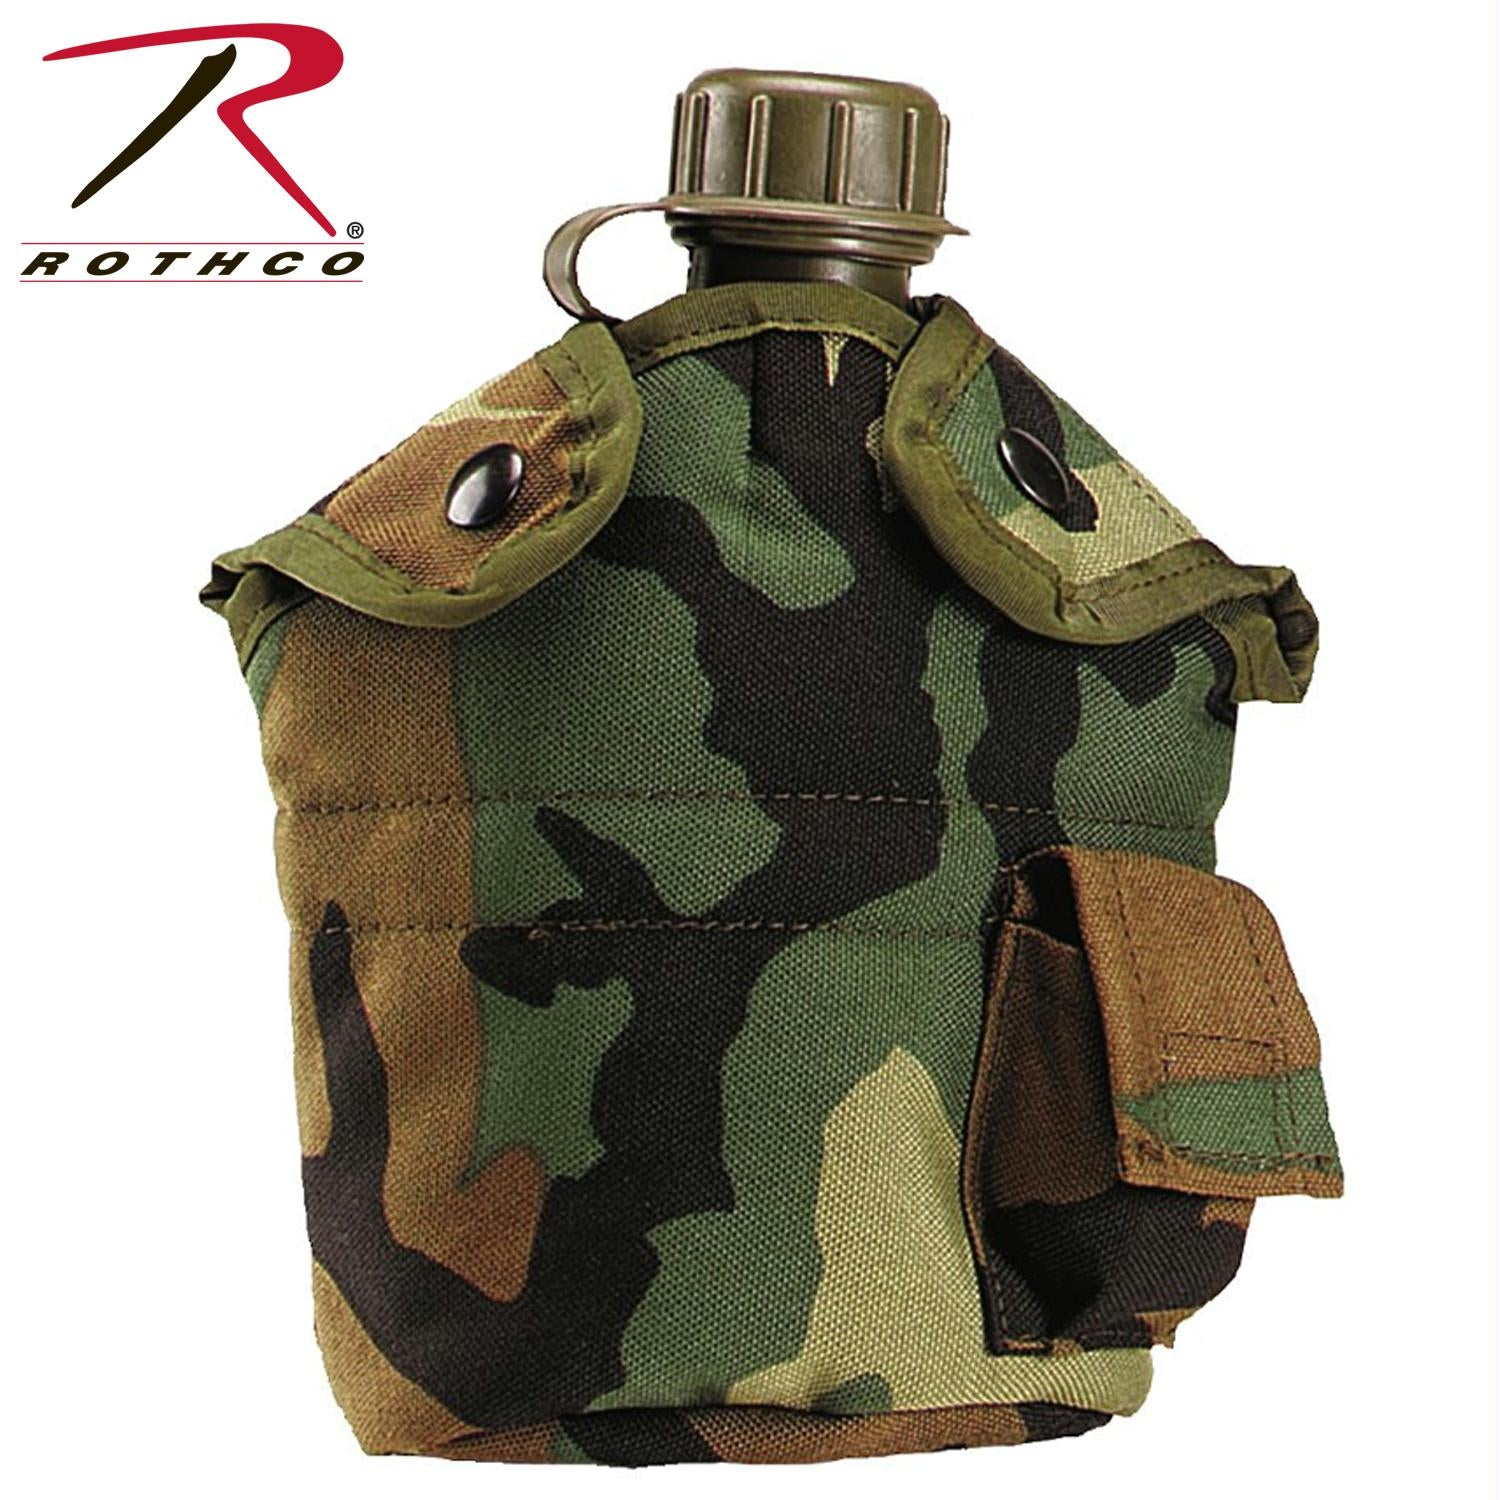 Rothco G.I. Type Enhanced Nylon 1qt. Canteen Cover - Woodland Camo